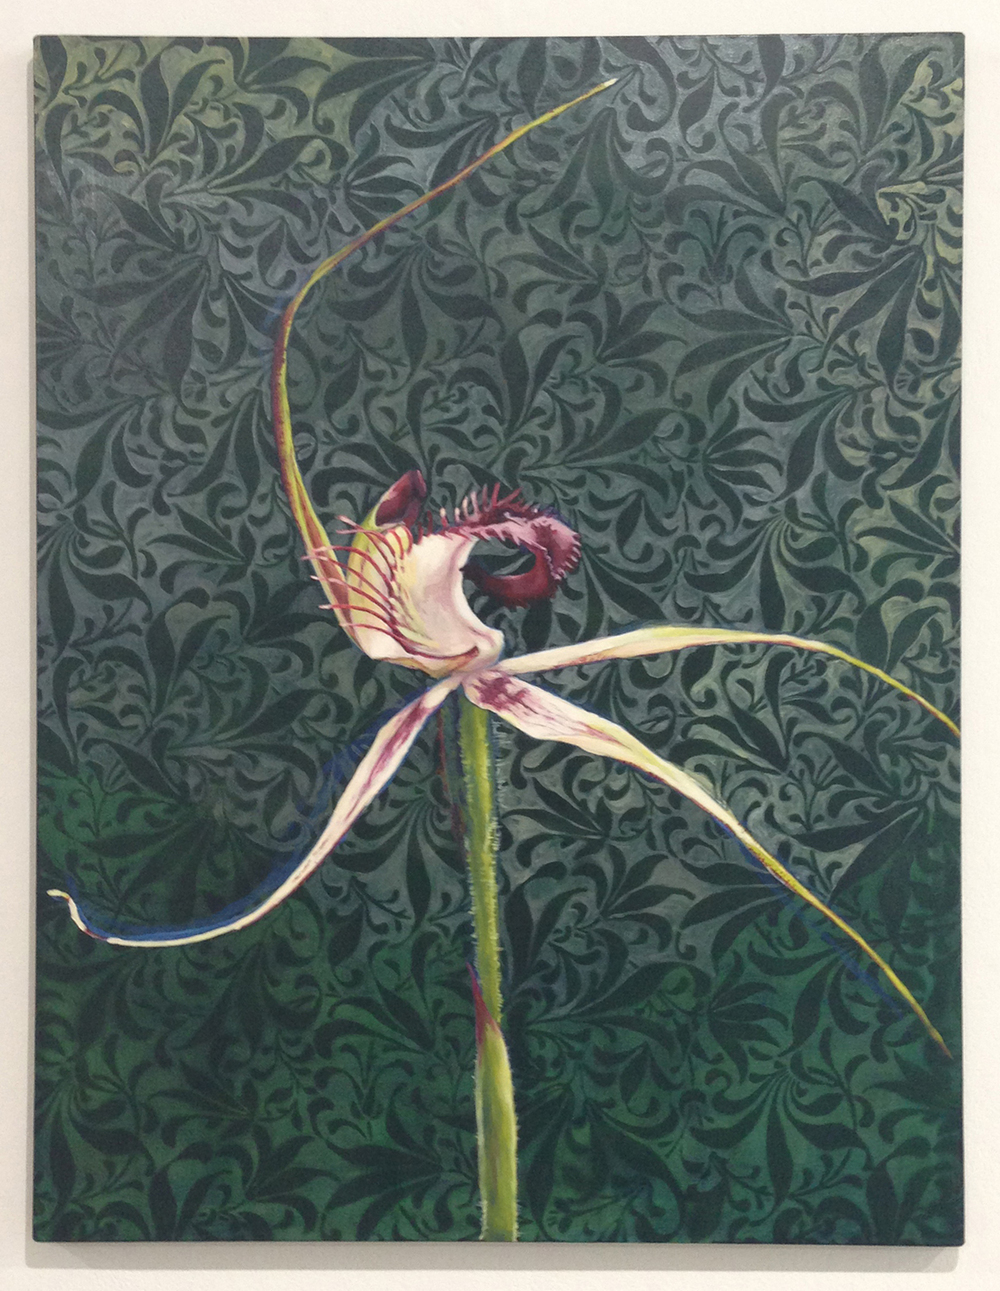 1. Clare McFarlane,  Caladenia  2013, acrylic and aerosol on canvas, $6,000